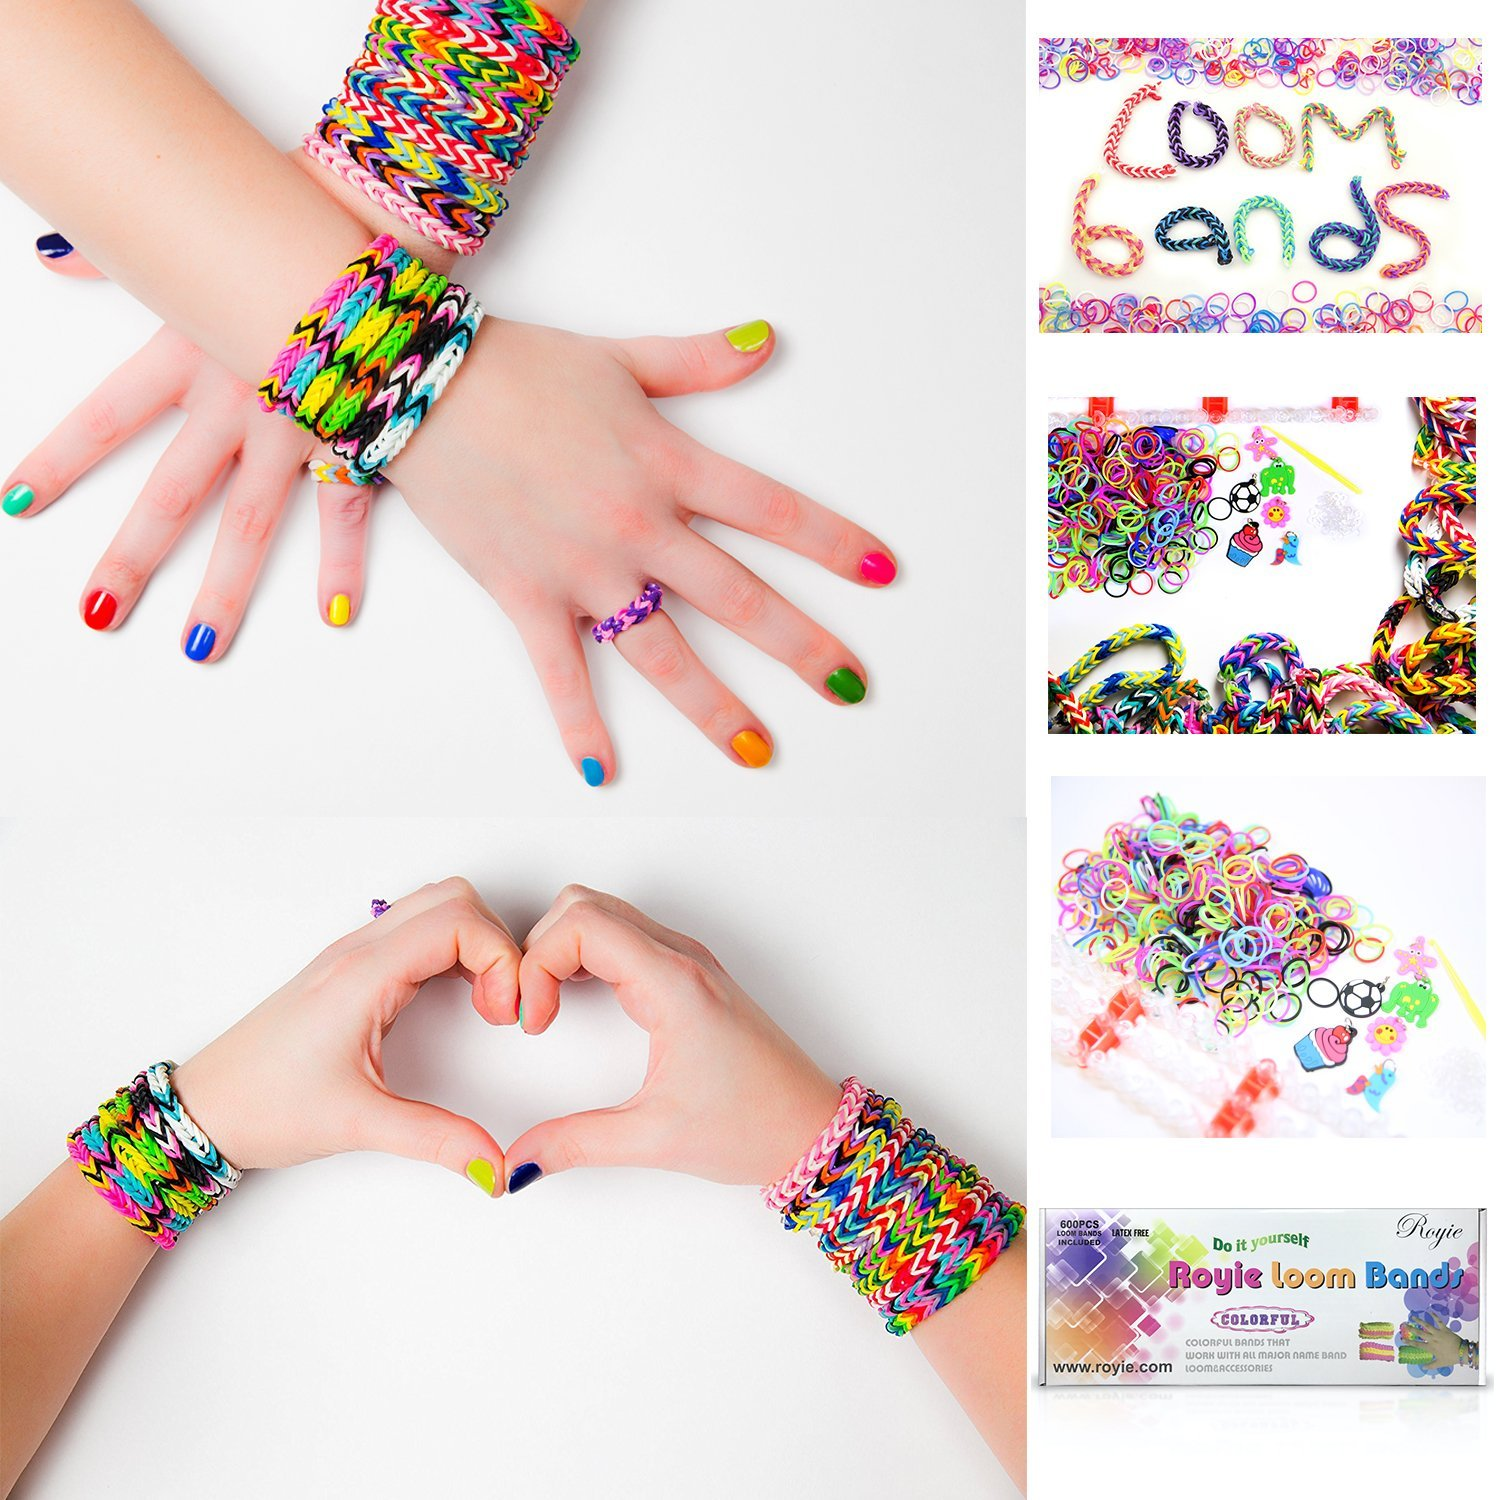 Royie Premium Rainbow Loom Bands 600 Kit, Bracelet Making Kit, 24 S Clips, 600 Loom Band, Six Charms Rubber bands